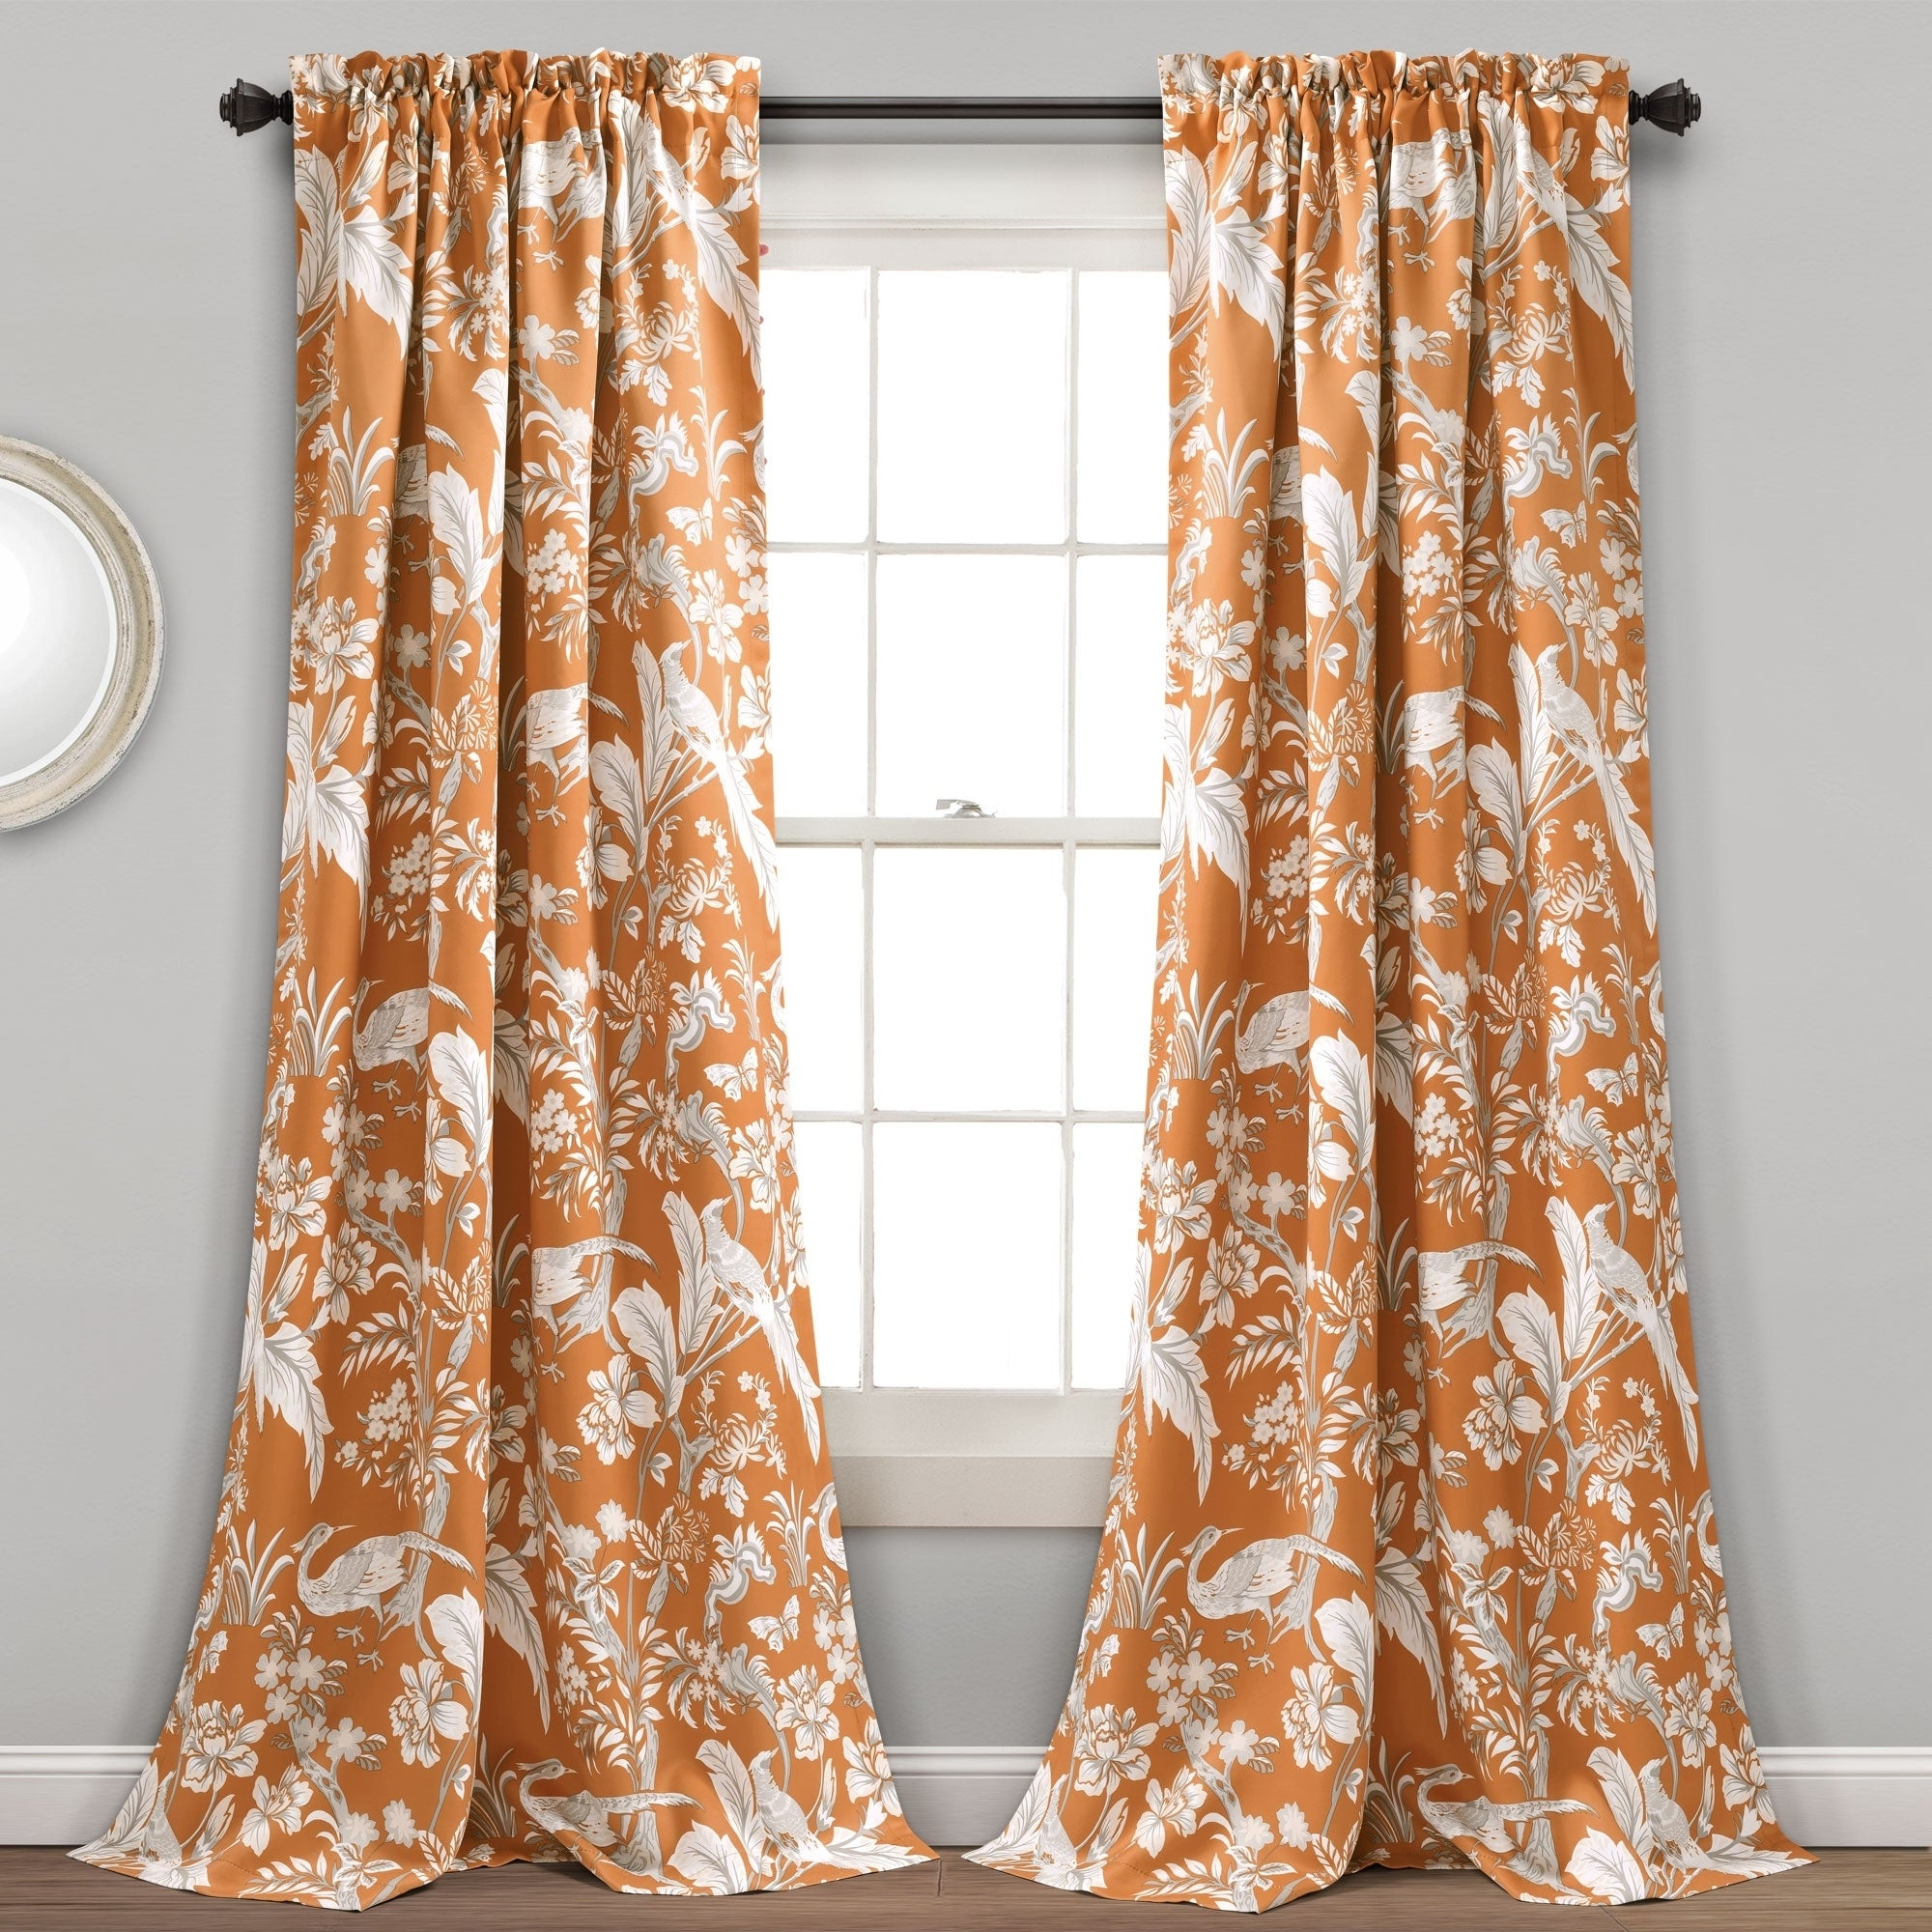 Well Known Dolores Room Darkening Floral Curtain Panel Pairs Throughout Lush Decor Dolores Room Darkening Floral Curtain Panel Pair (View 7 of 20)